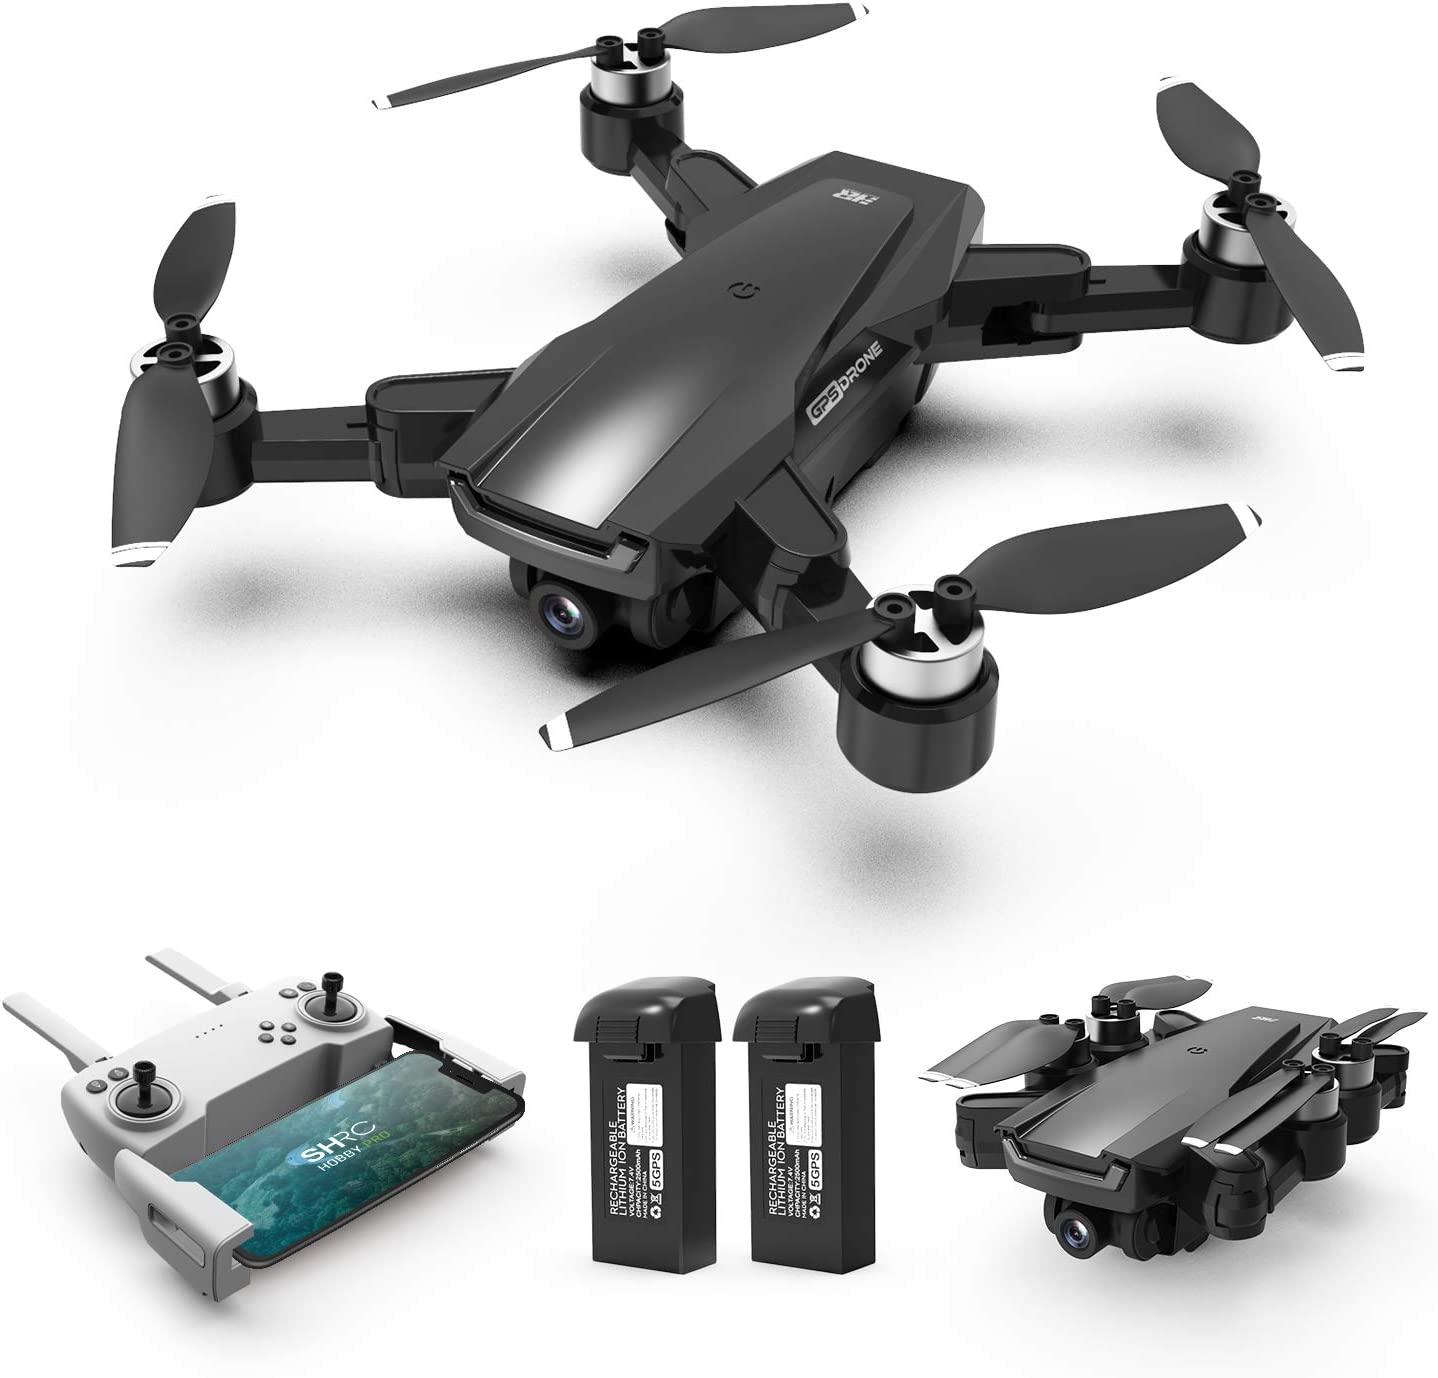 Drone with Brushless Motor for Adults and Beginners,Foldable Drones with 4K FHD Camera Live Video and GPS Return Home,Quadcopter with Altitude Hold,Follow Me,Includes Carrying Bag